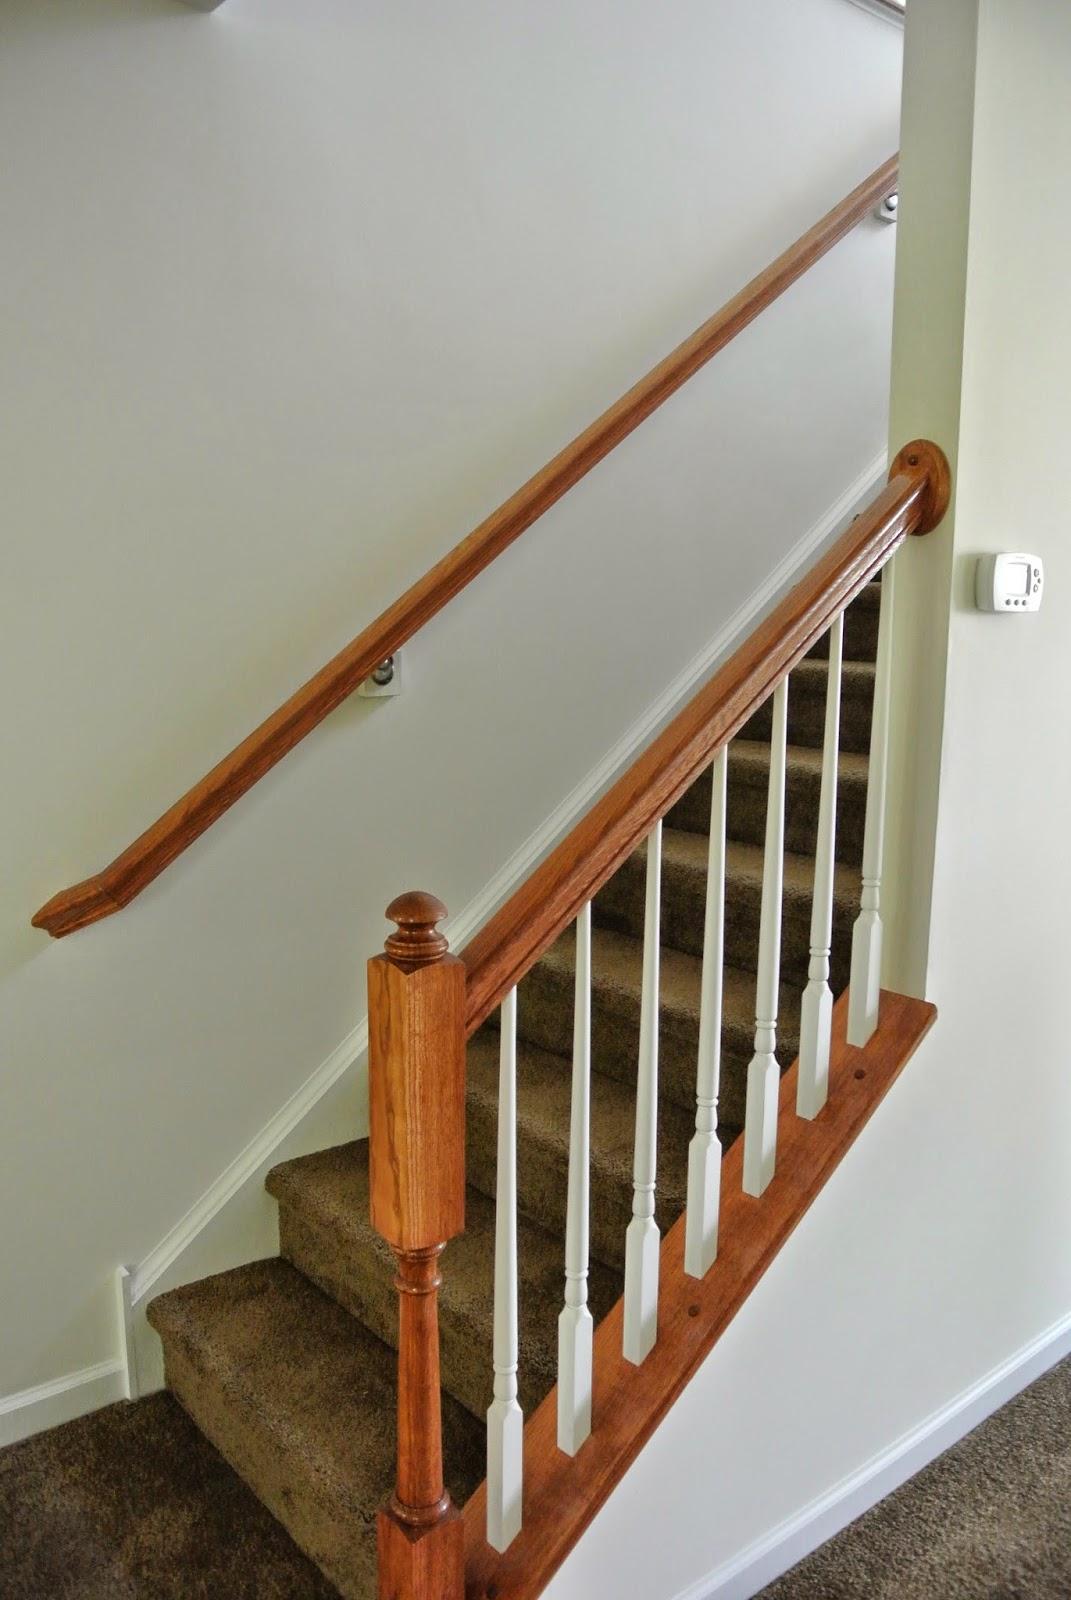 A picture of the finished banister and railing at the bottom of the stairway to the second floor.